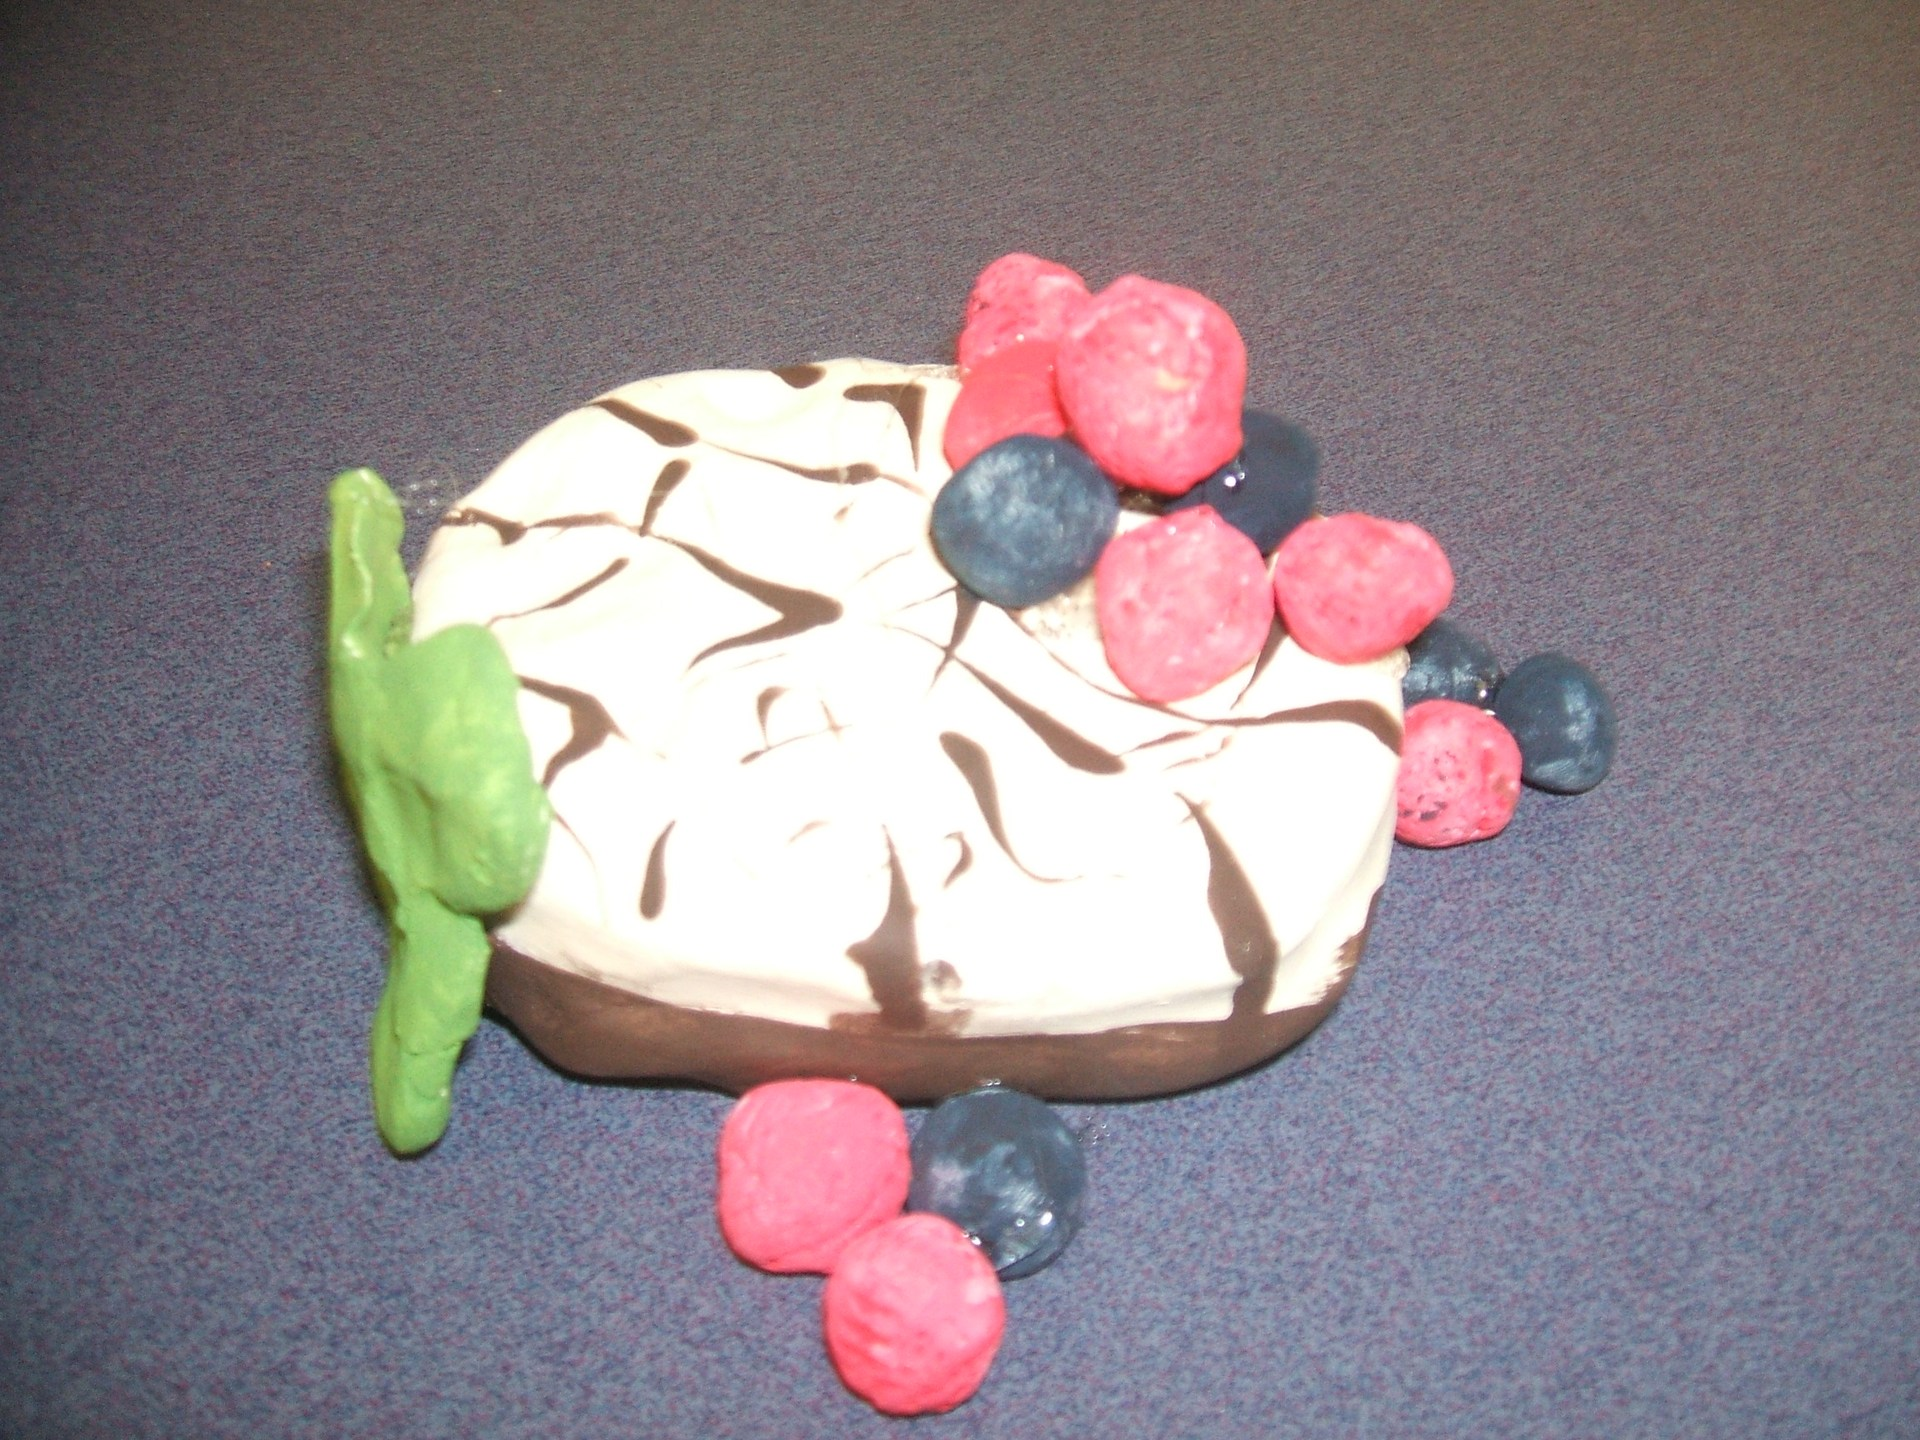 5th Grade Clay Food based on the art of Claes Oldenburg